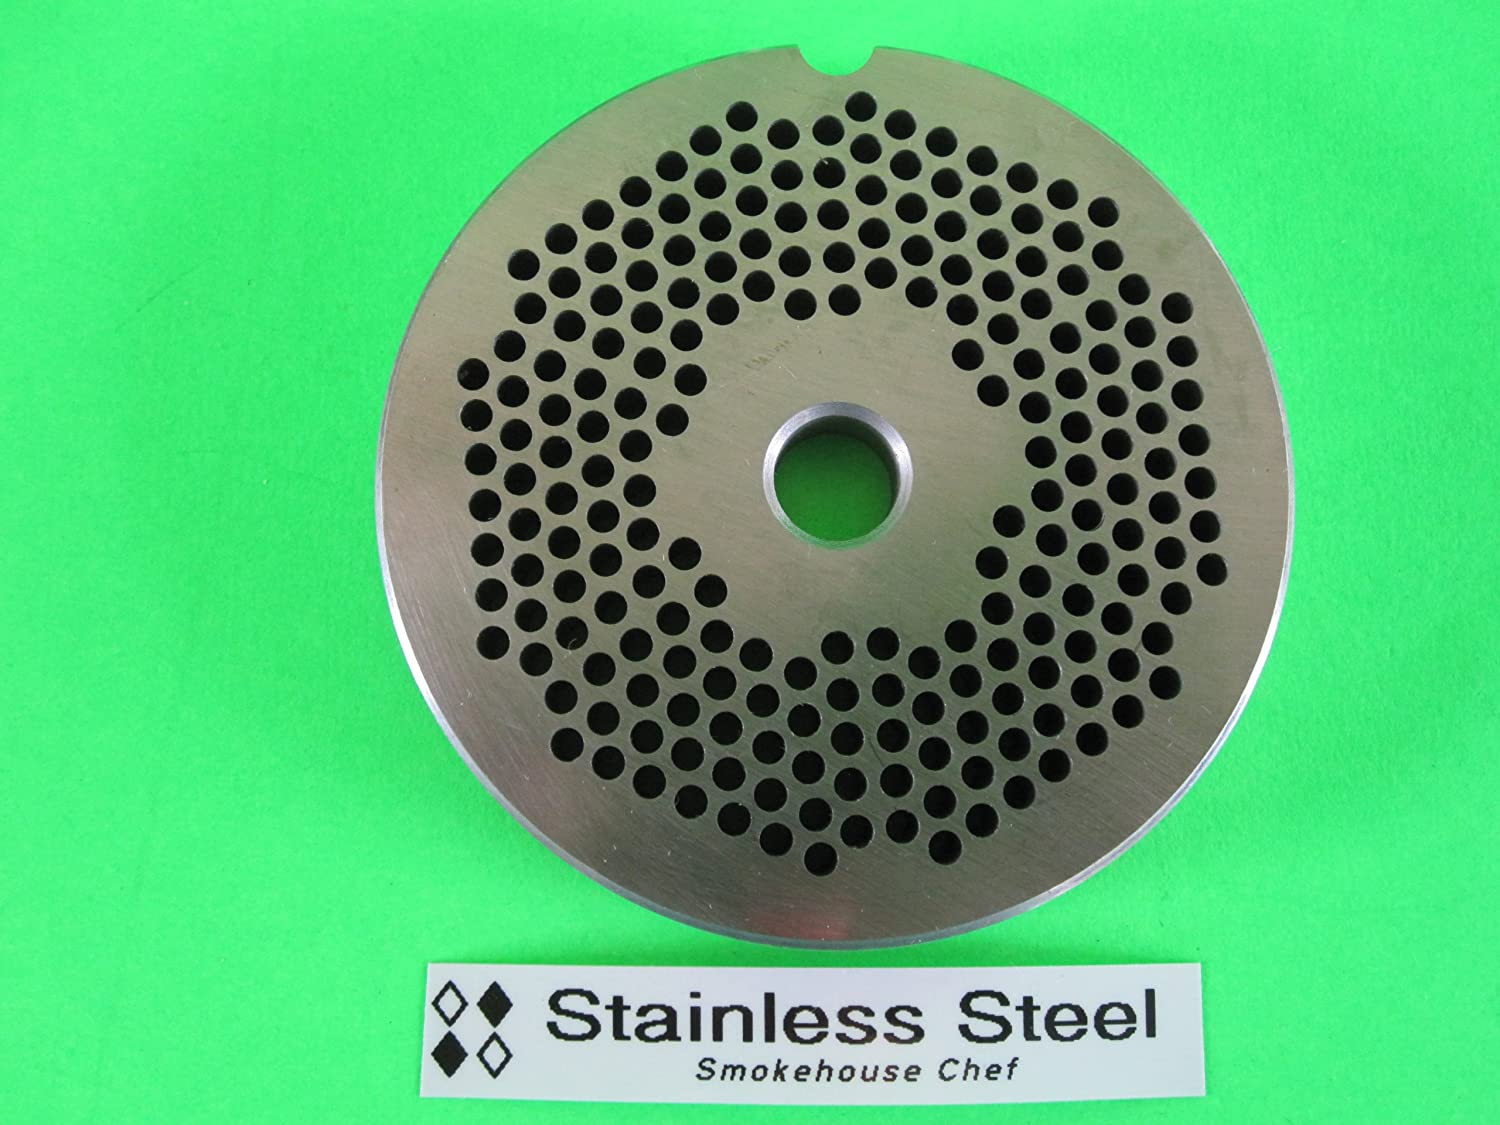 #22 x 1/8 STAINLESS STEEL Meat Grinder plate disc for Hobart LEM Cabelas Universal MTN & others Smokehouse Chef 22x3.0pl